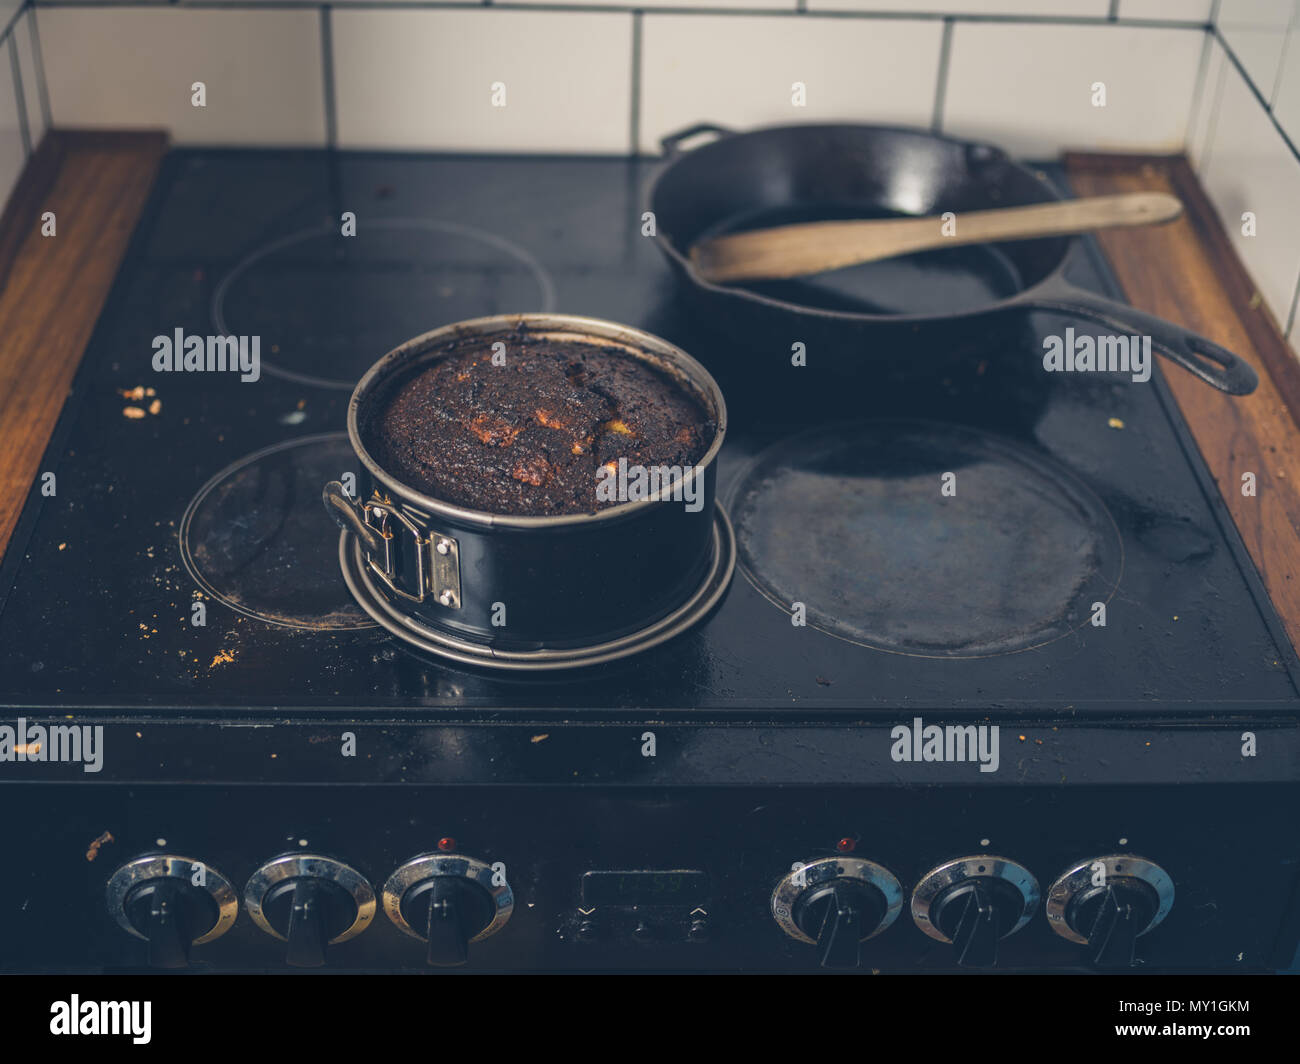 A burnt cake is sitting on a dirty stove - Stock Image